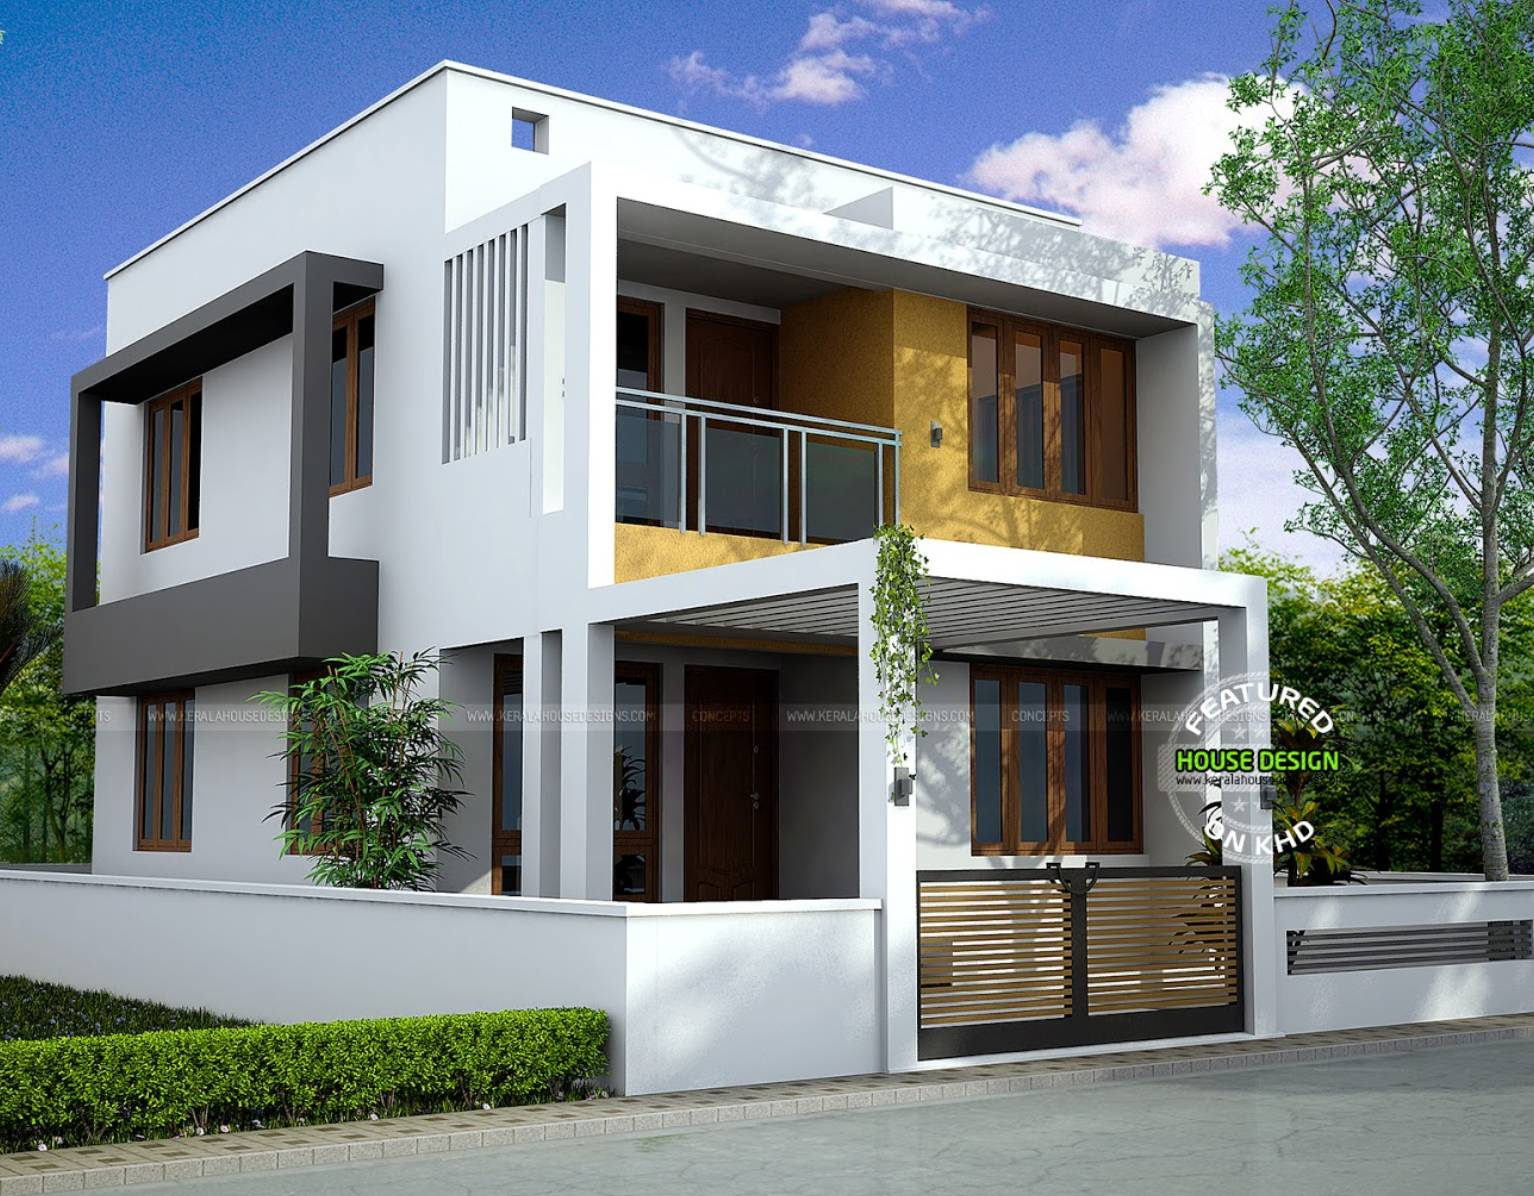 Real Value Land Promoters and Builders | Builders